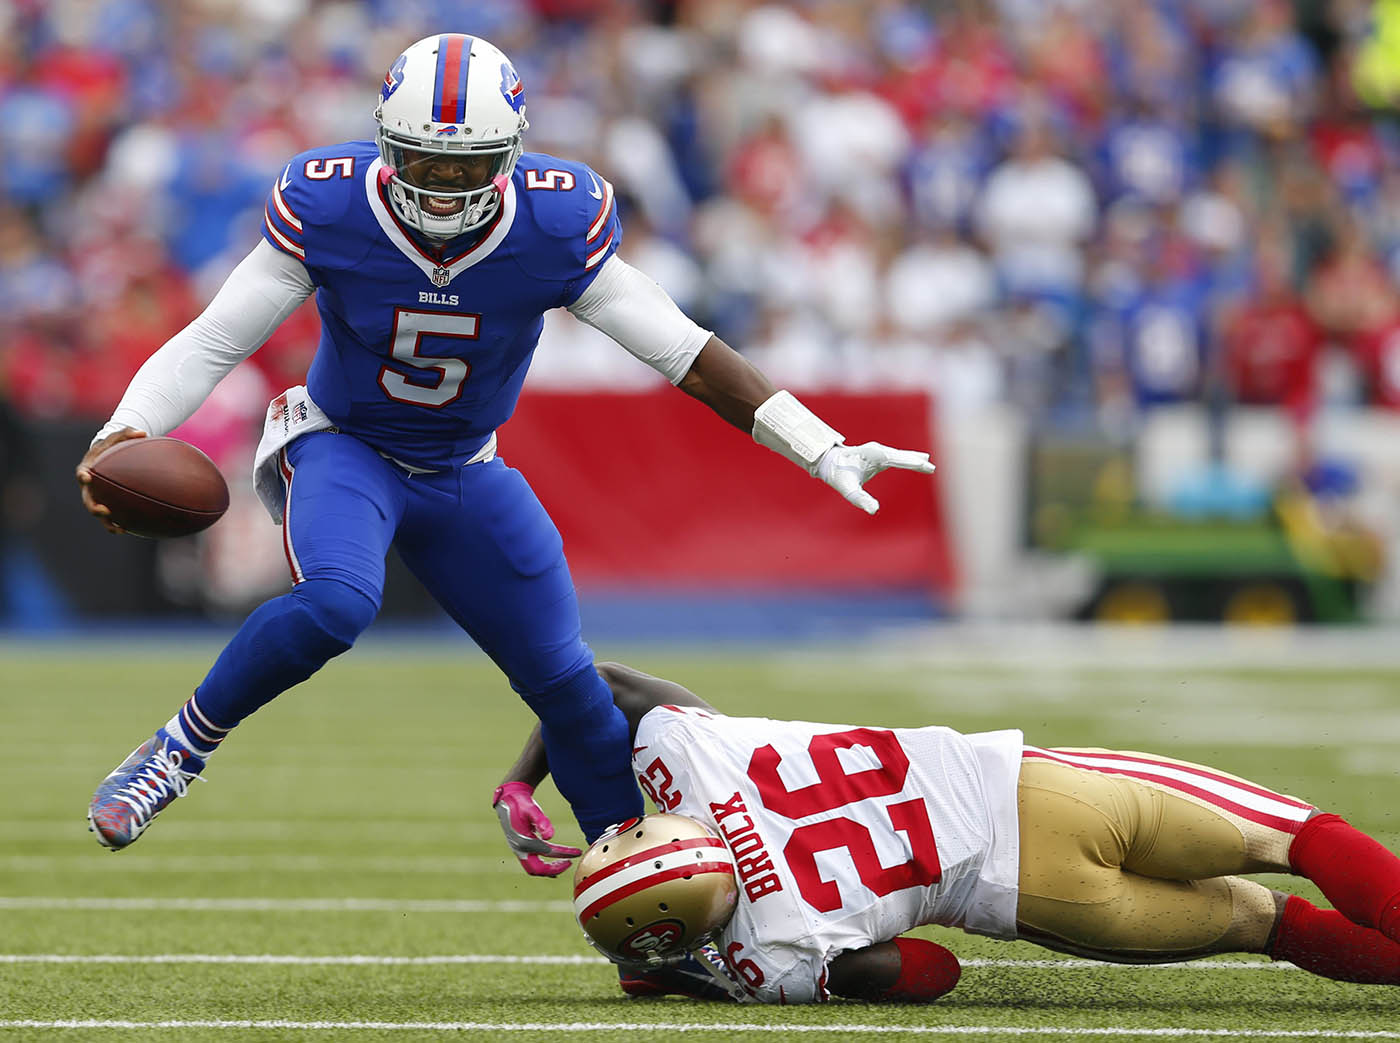 Buffalo Bills quarterback Tyrod Taylor (5) breaks a tackle attempt by San Francisco 49ers cornerback Tramaine Brock (26) during the second quarter at New Era Field in Orchard Park, Sunday, Oct. 16, 2016. (Mark Mulville/The Buffalo News)